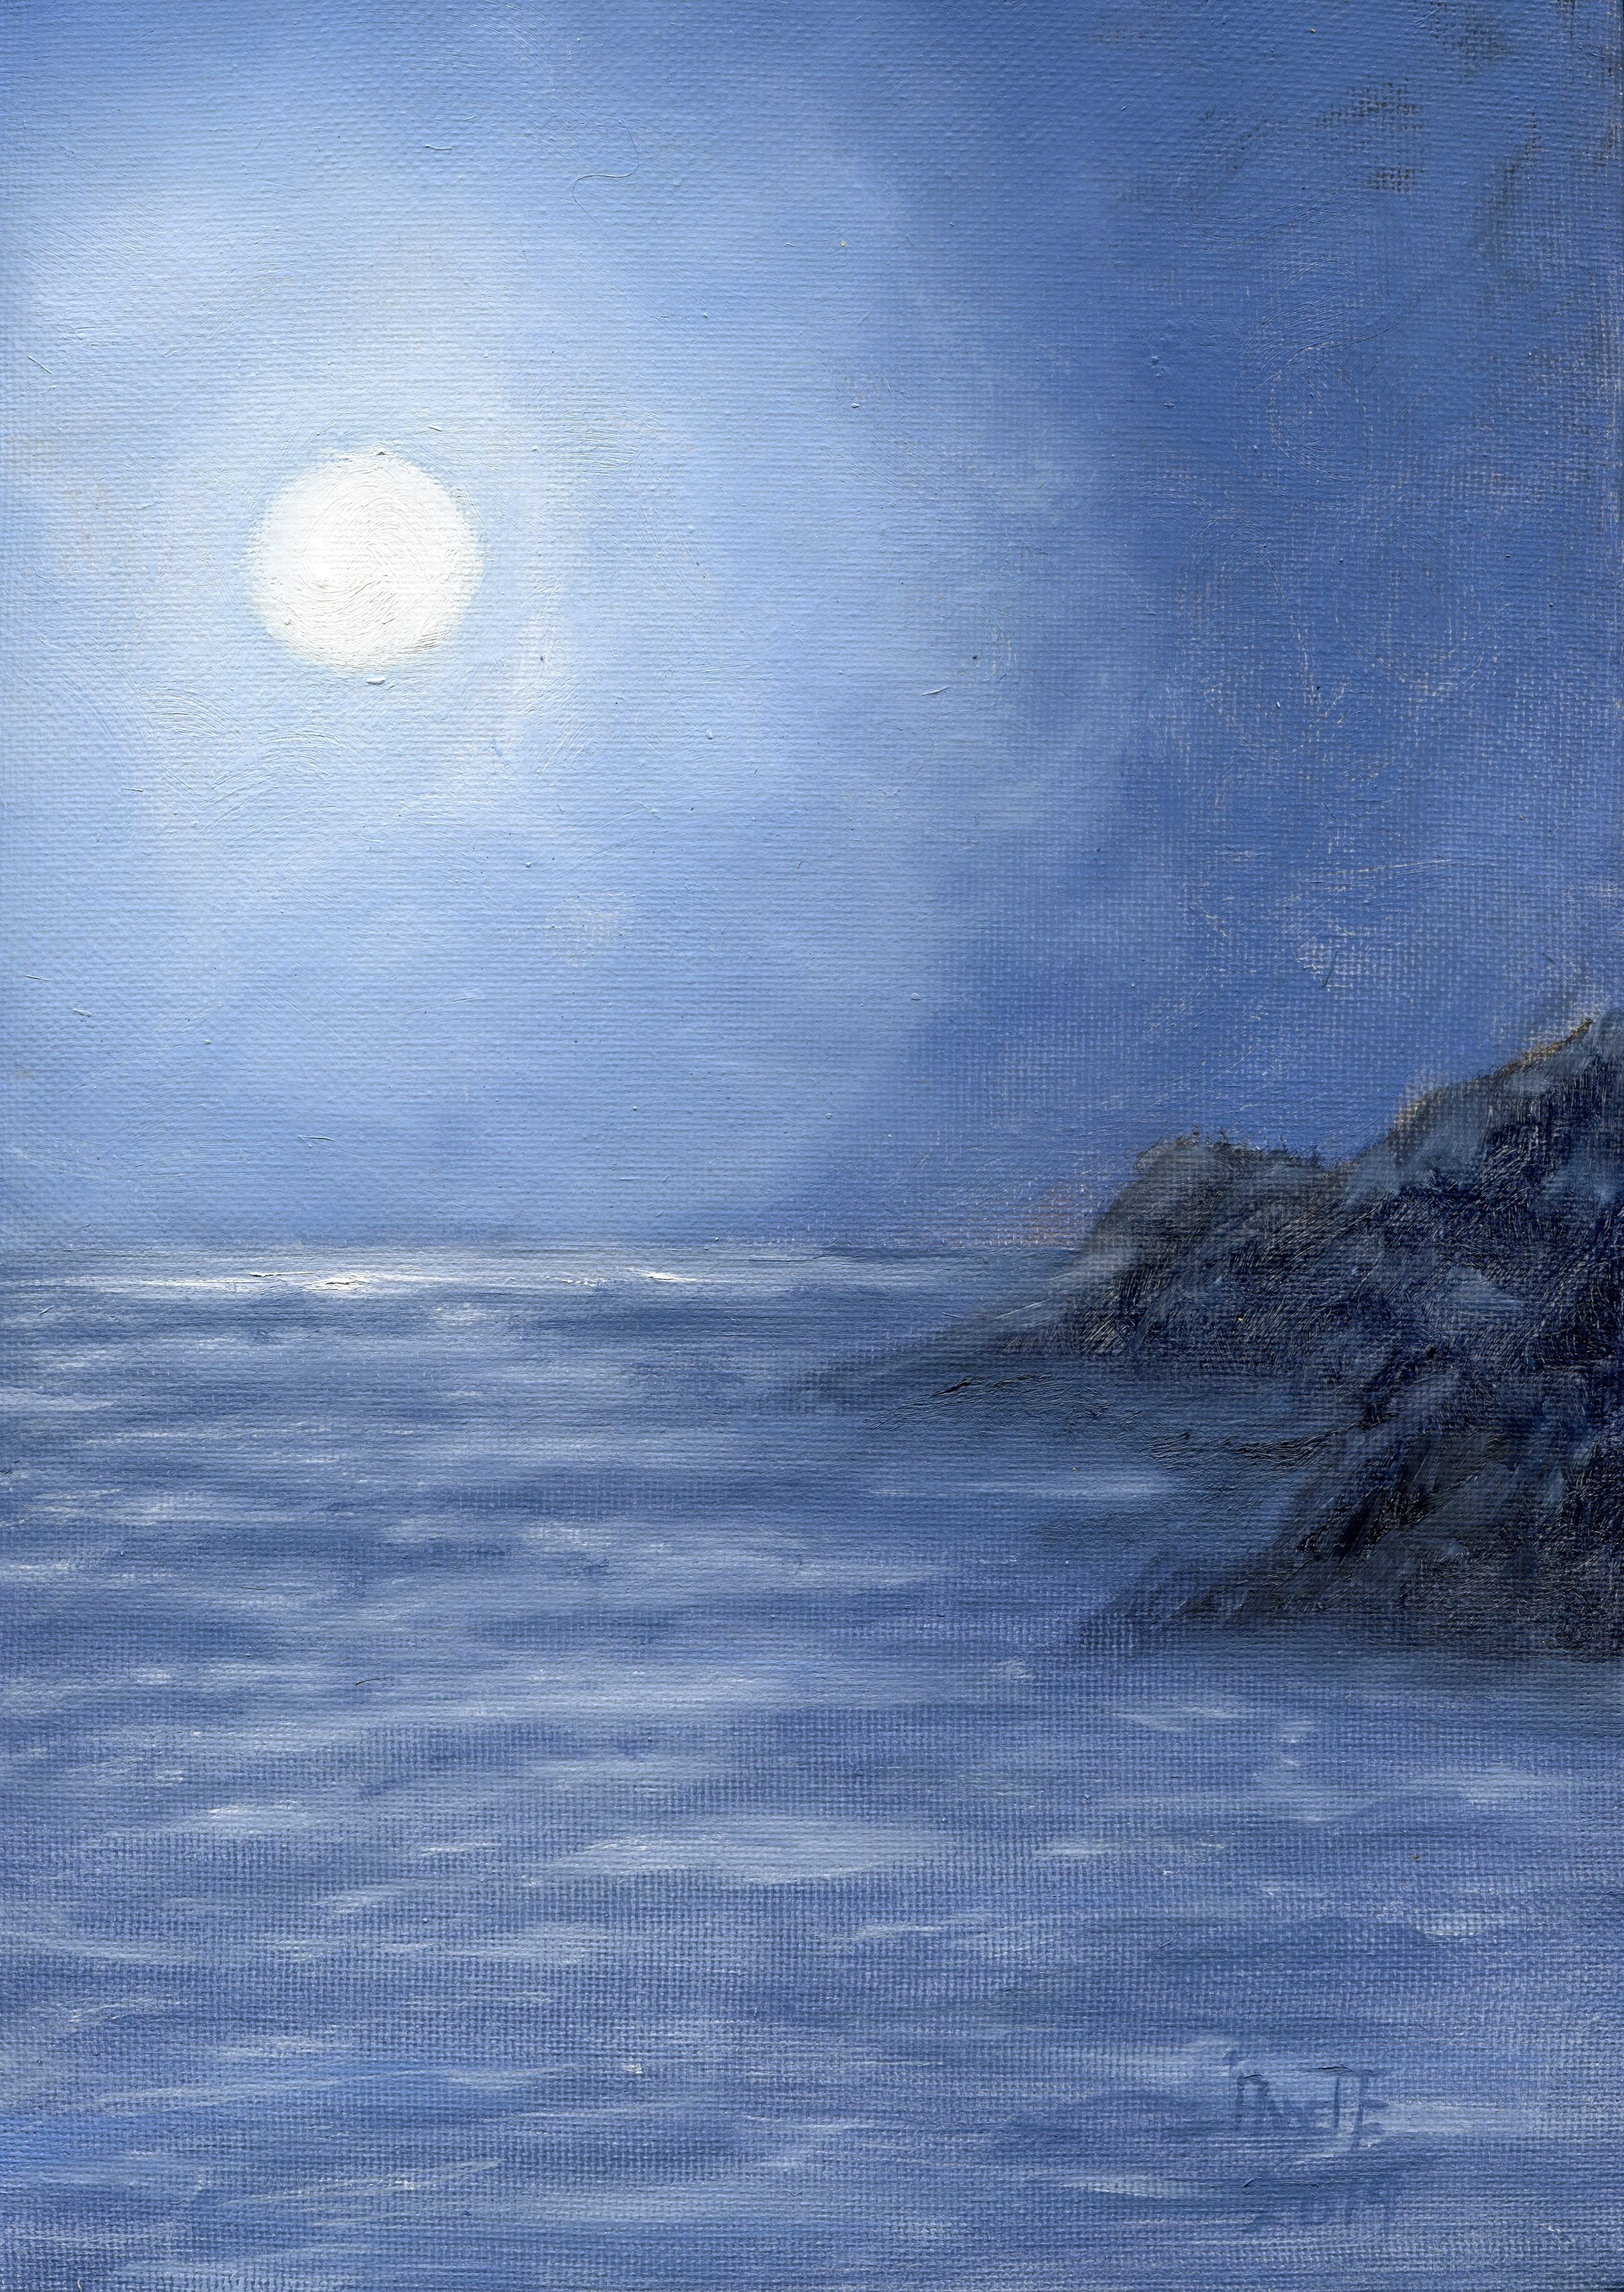 18a  Annette Farland  Moonlight  oil on canvas